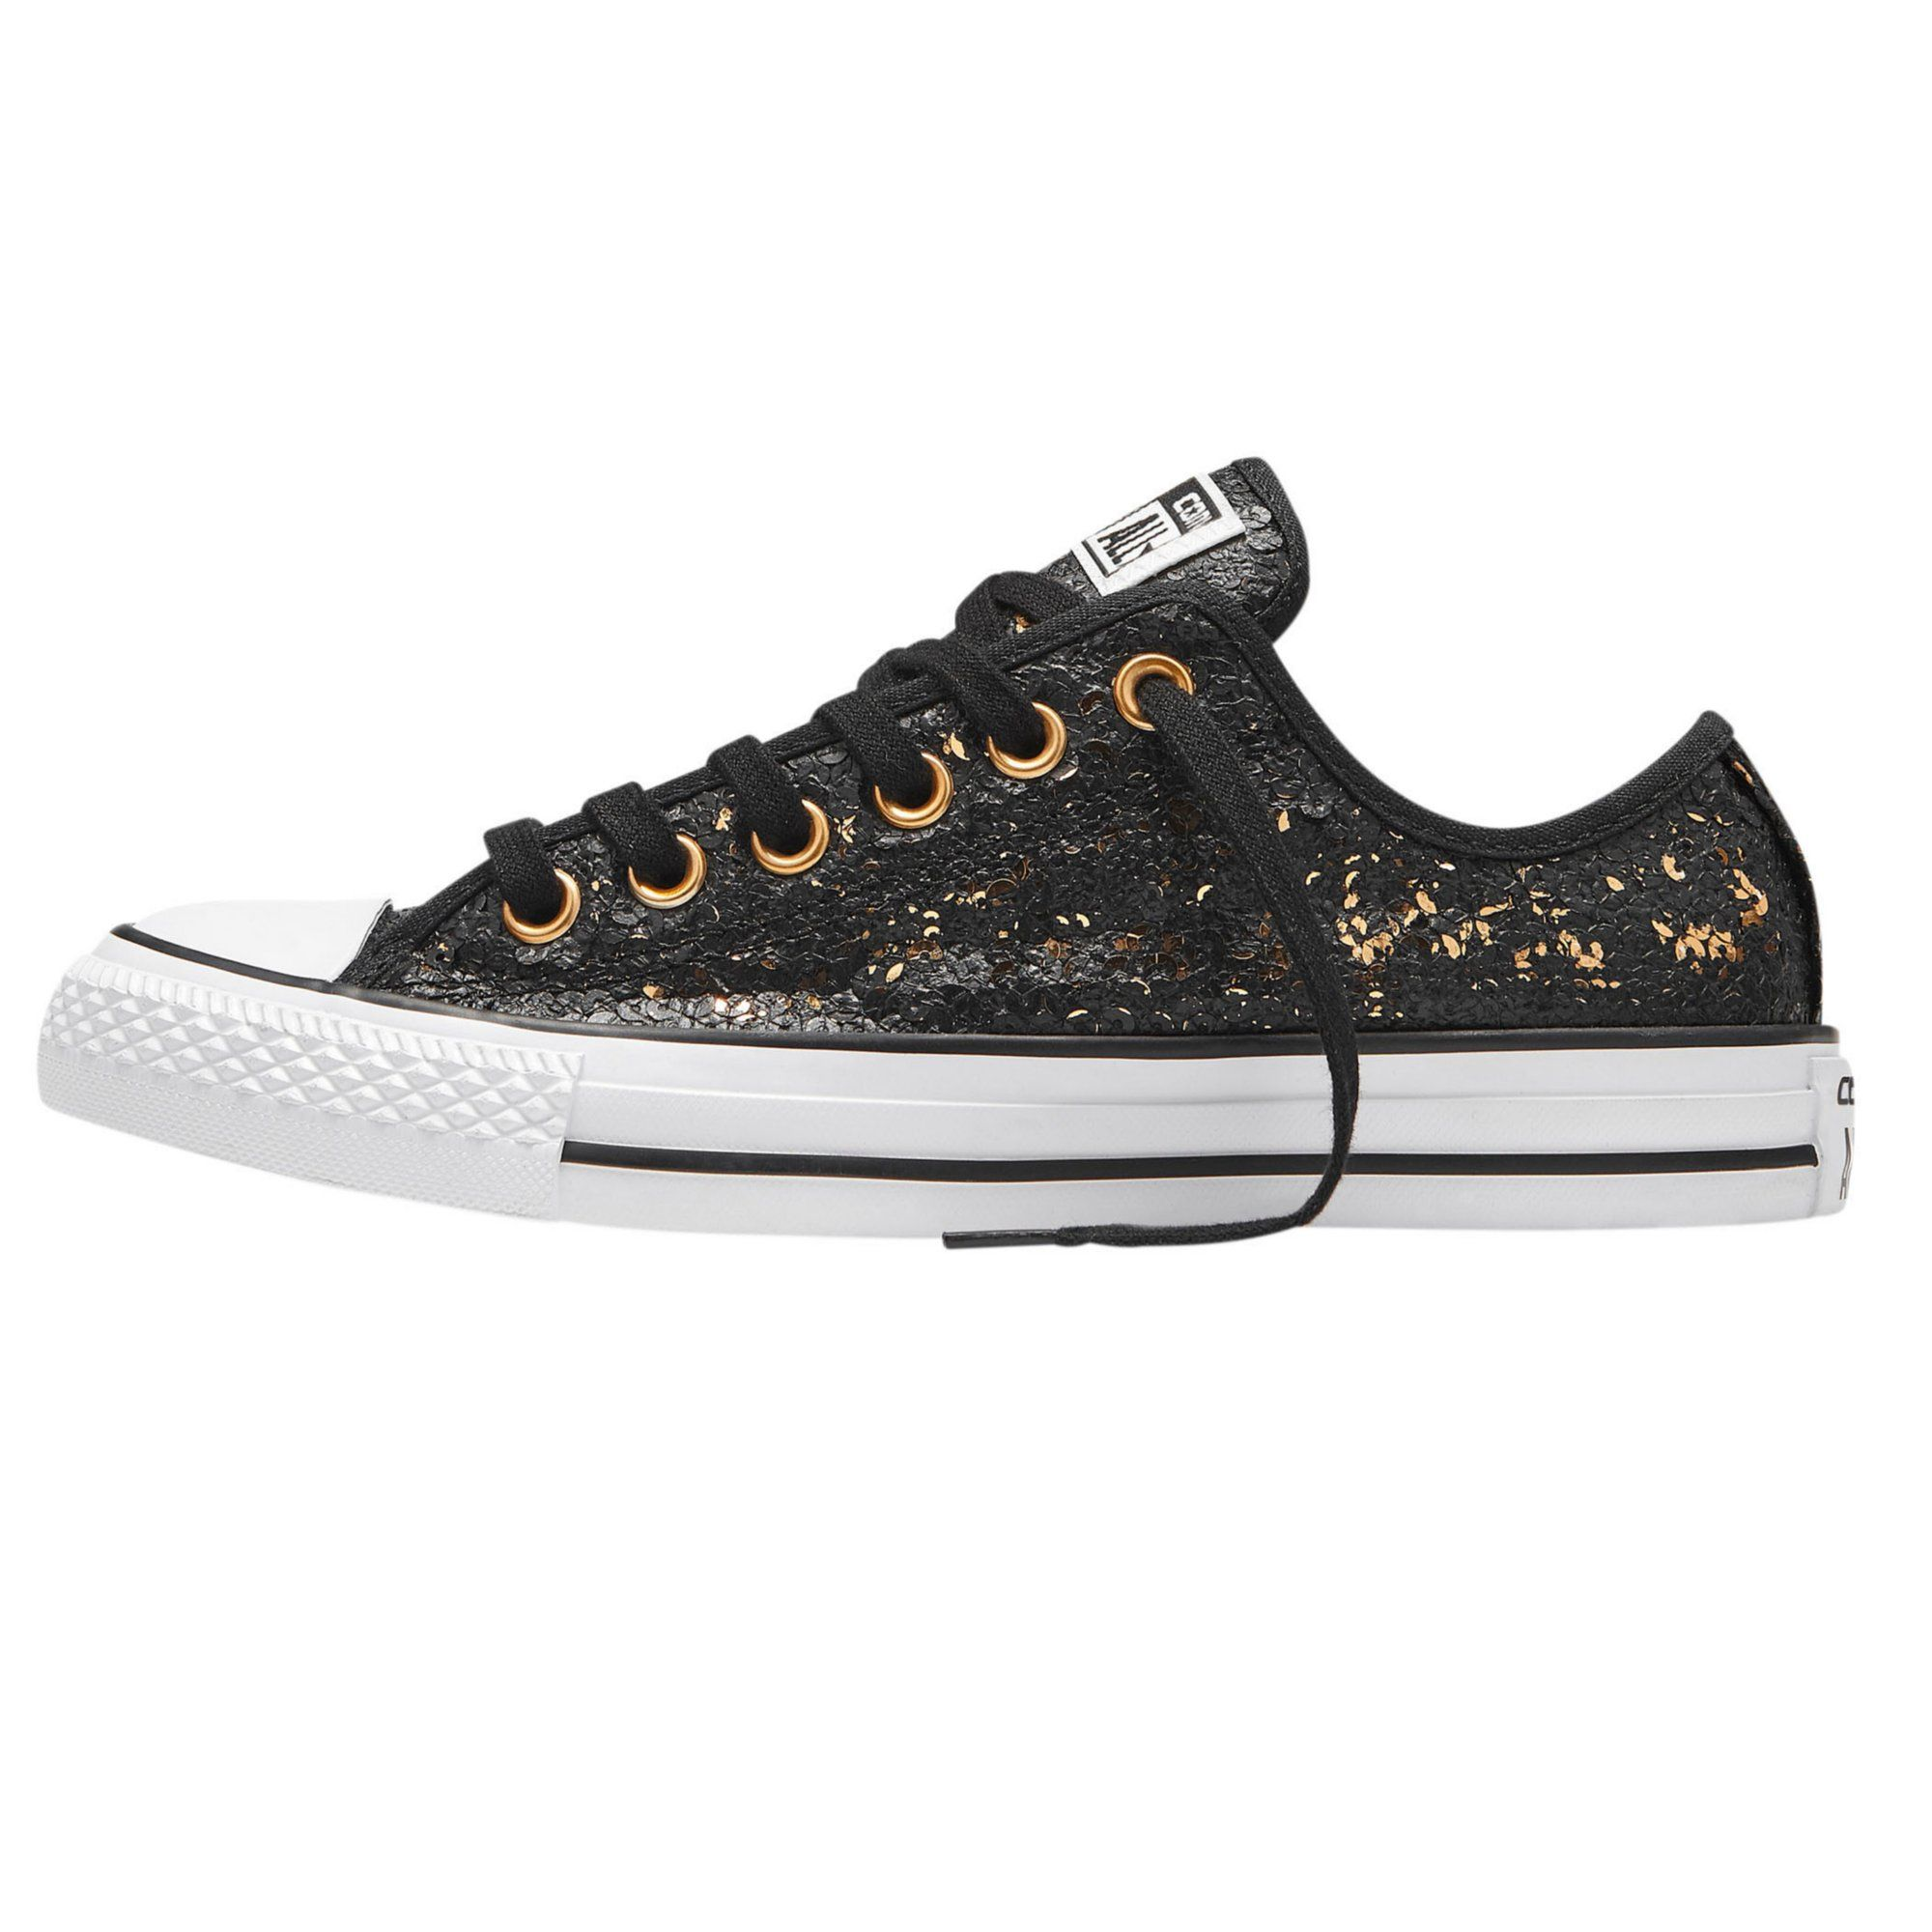 Toile Basse Converse Chaussure Converse Pas chaussure Chere